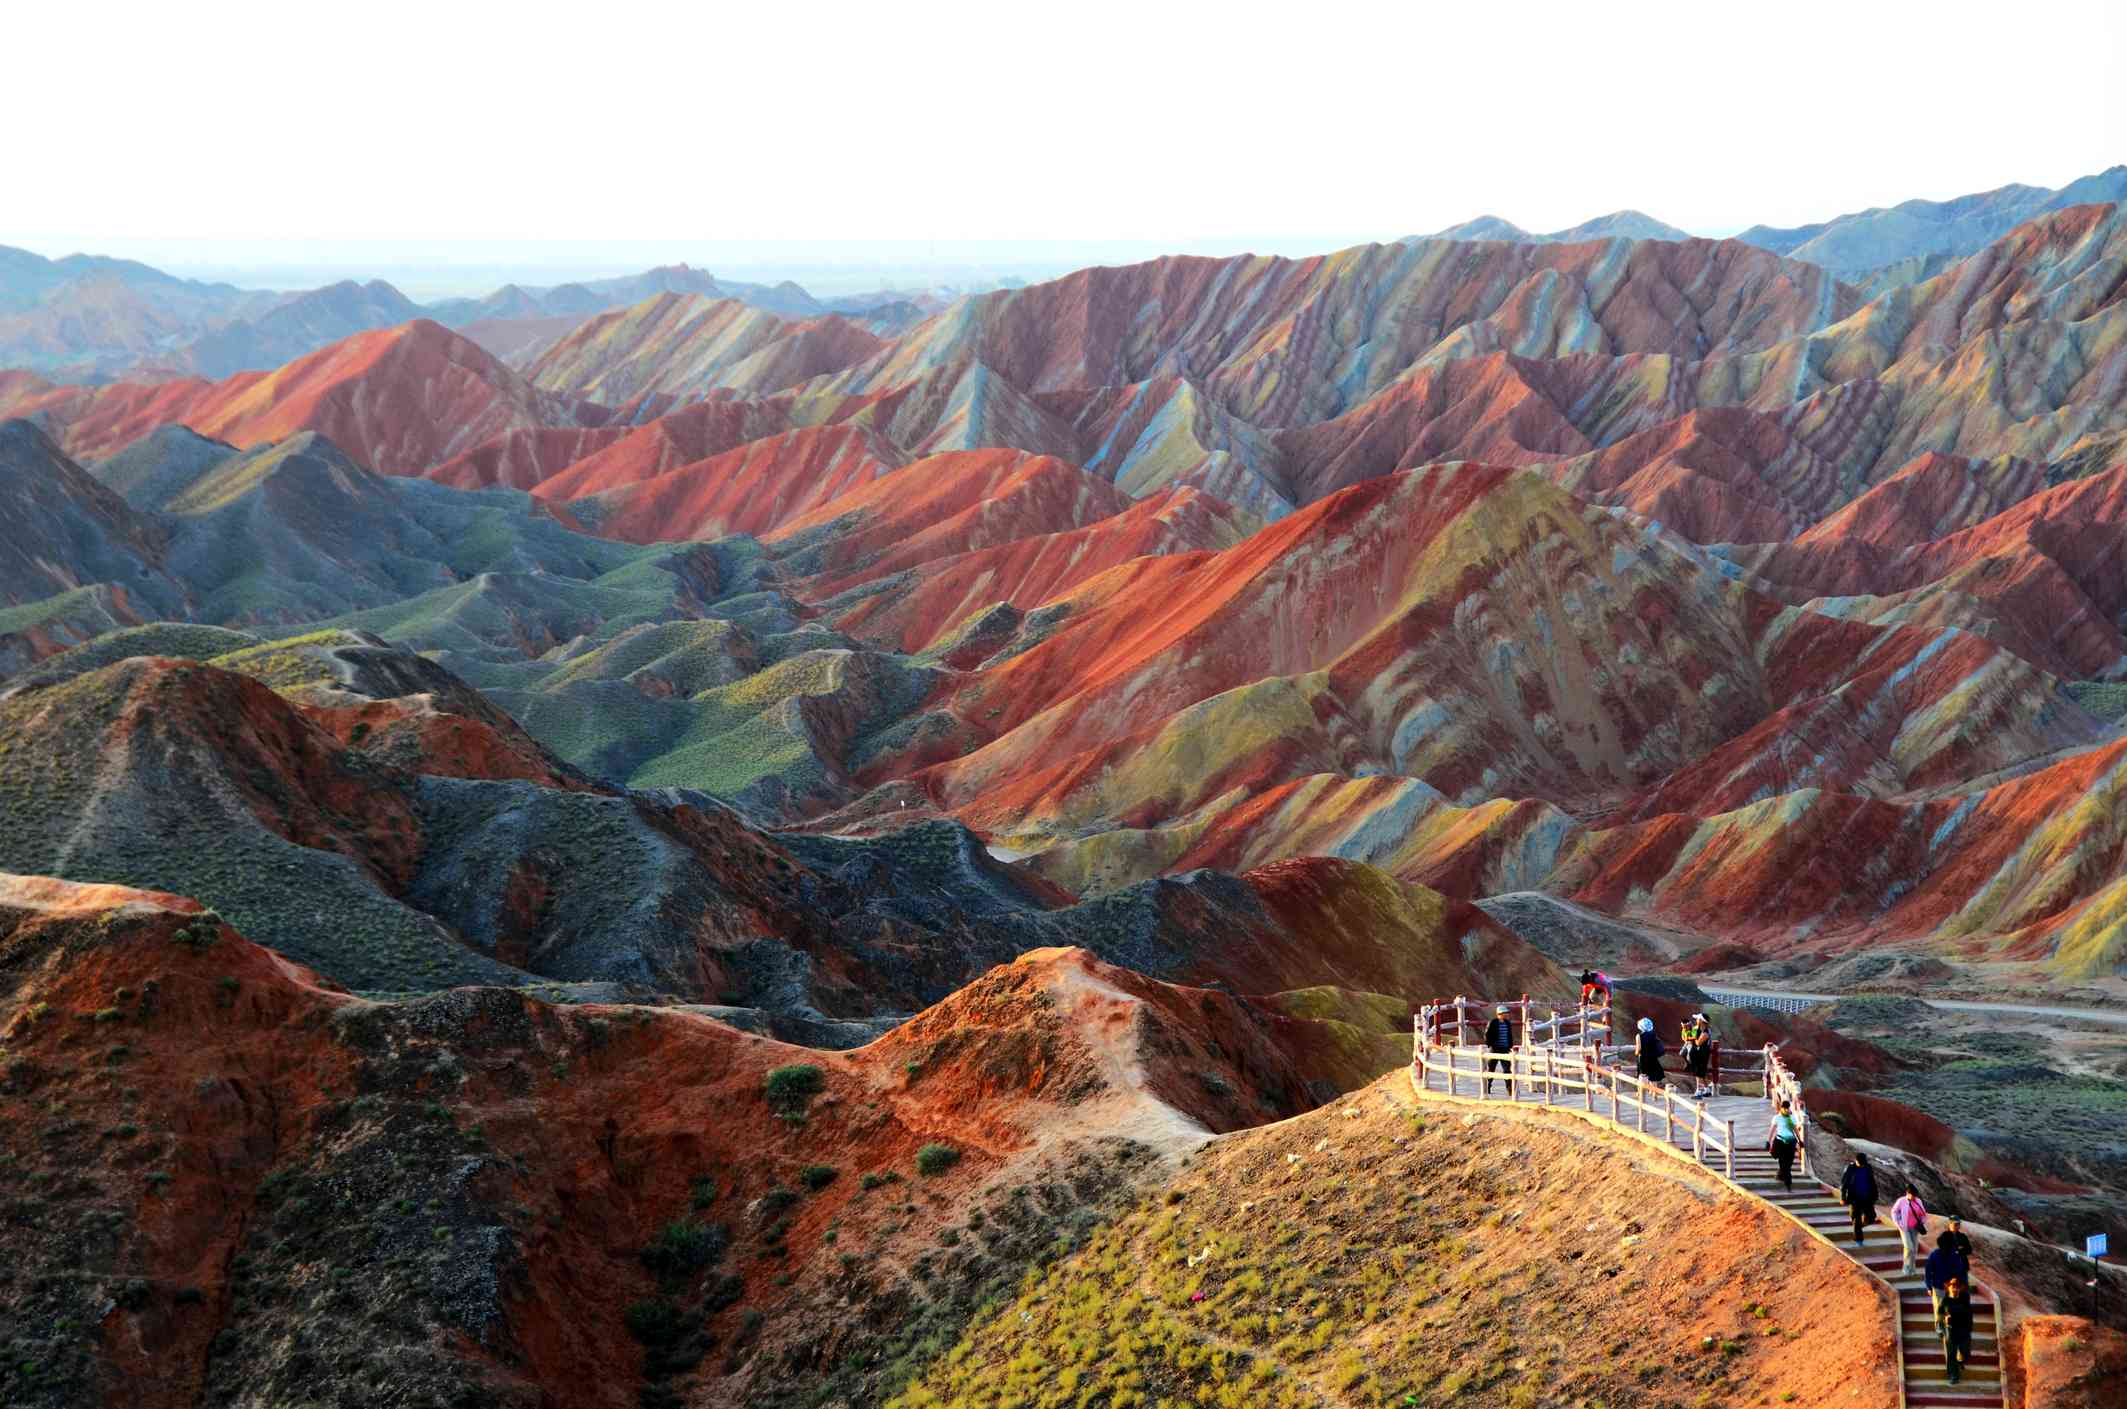 Tourists on a trail look out over a landscape of striped red, blue, and yellow mountains